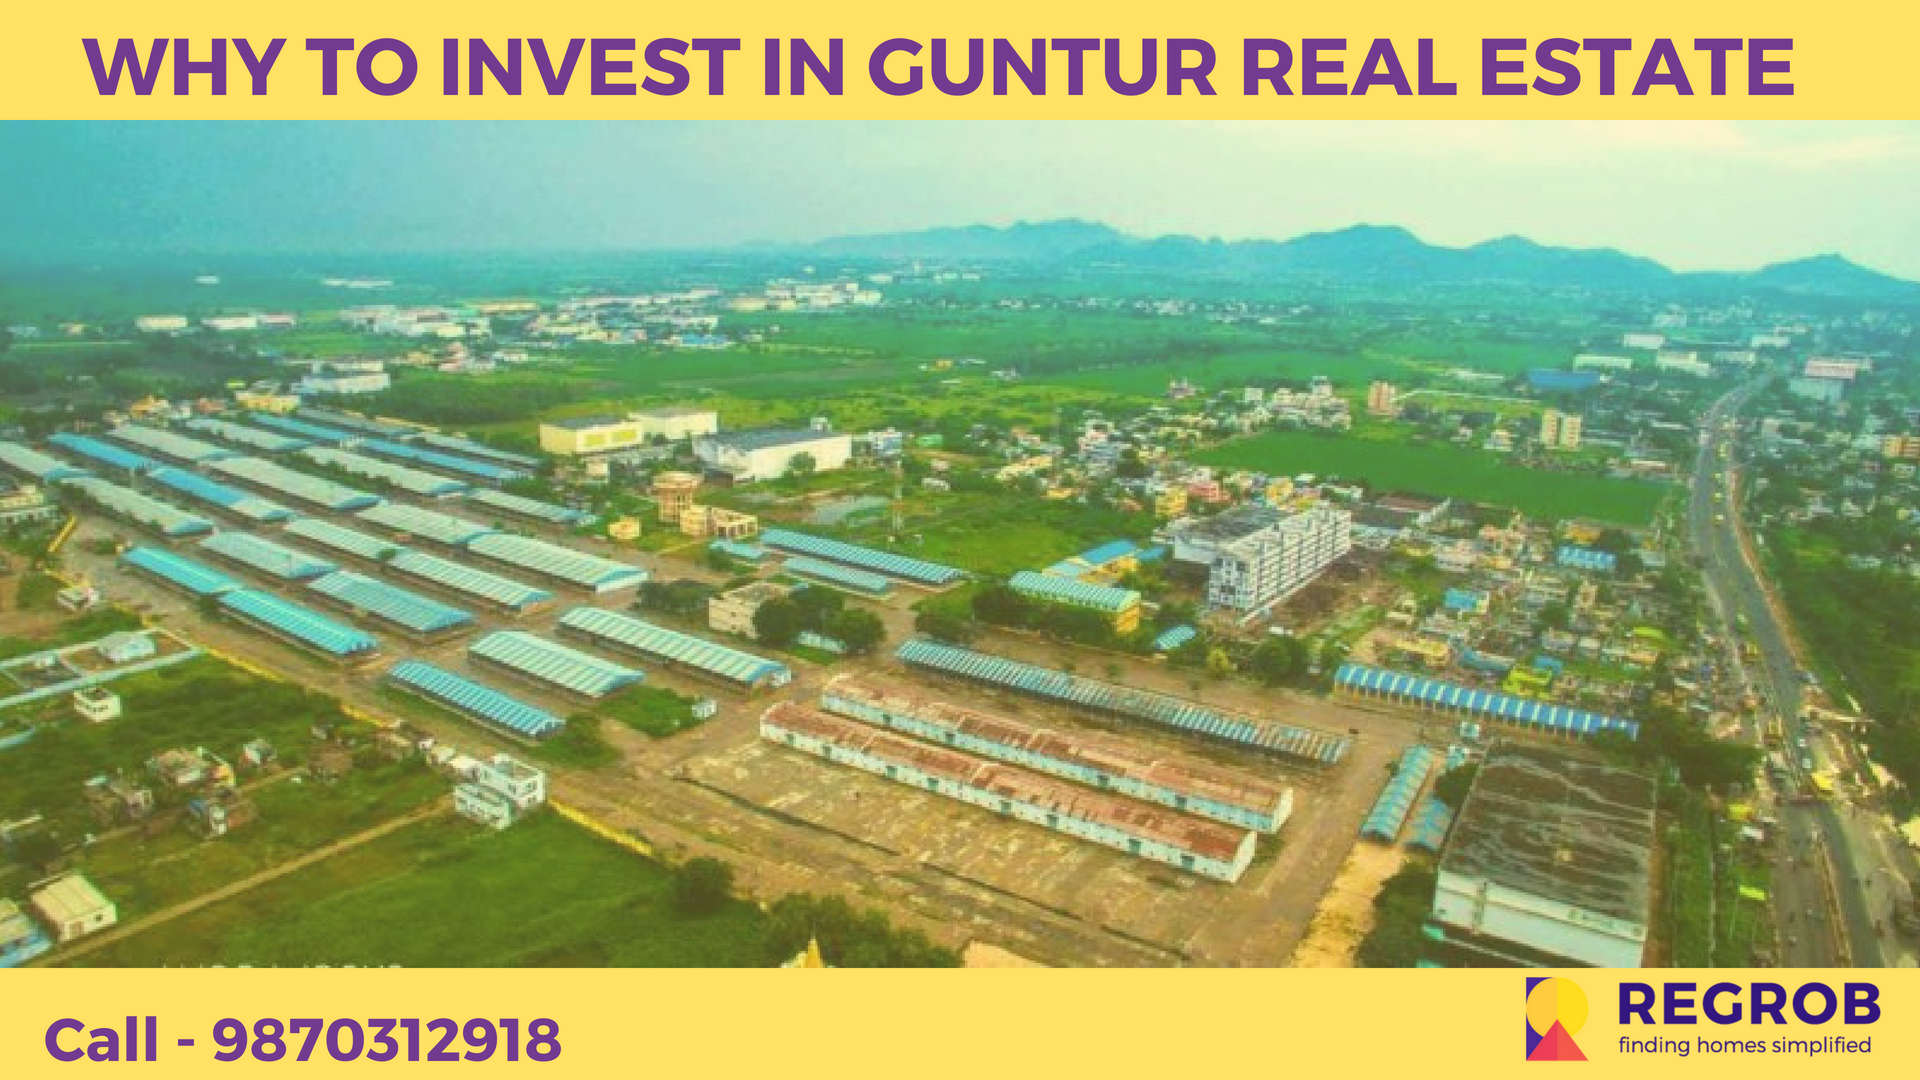 WHY TO INVEST IN GUNTUR REAL ESTATE